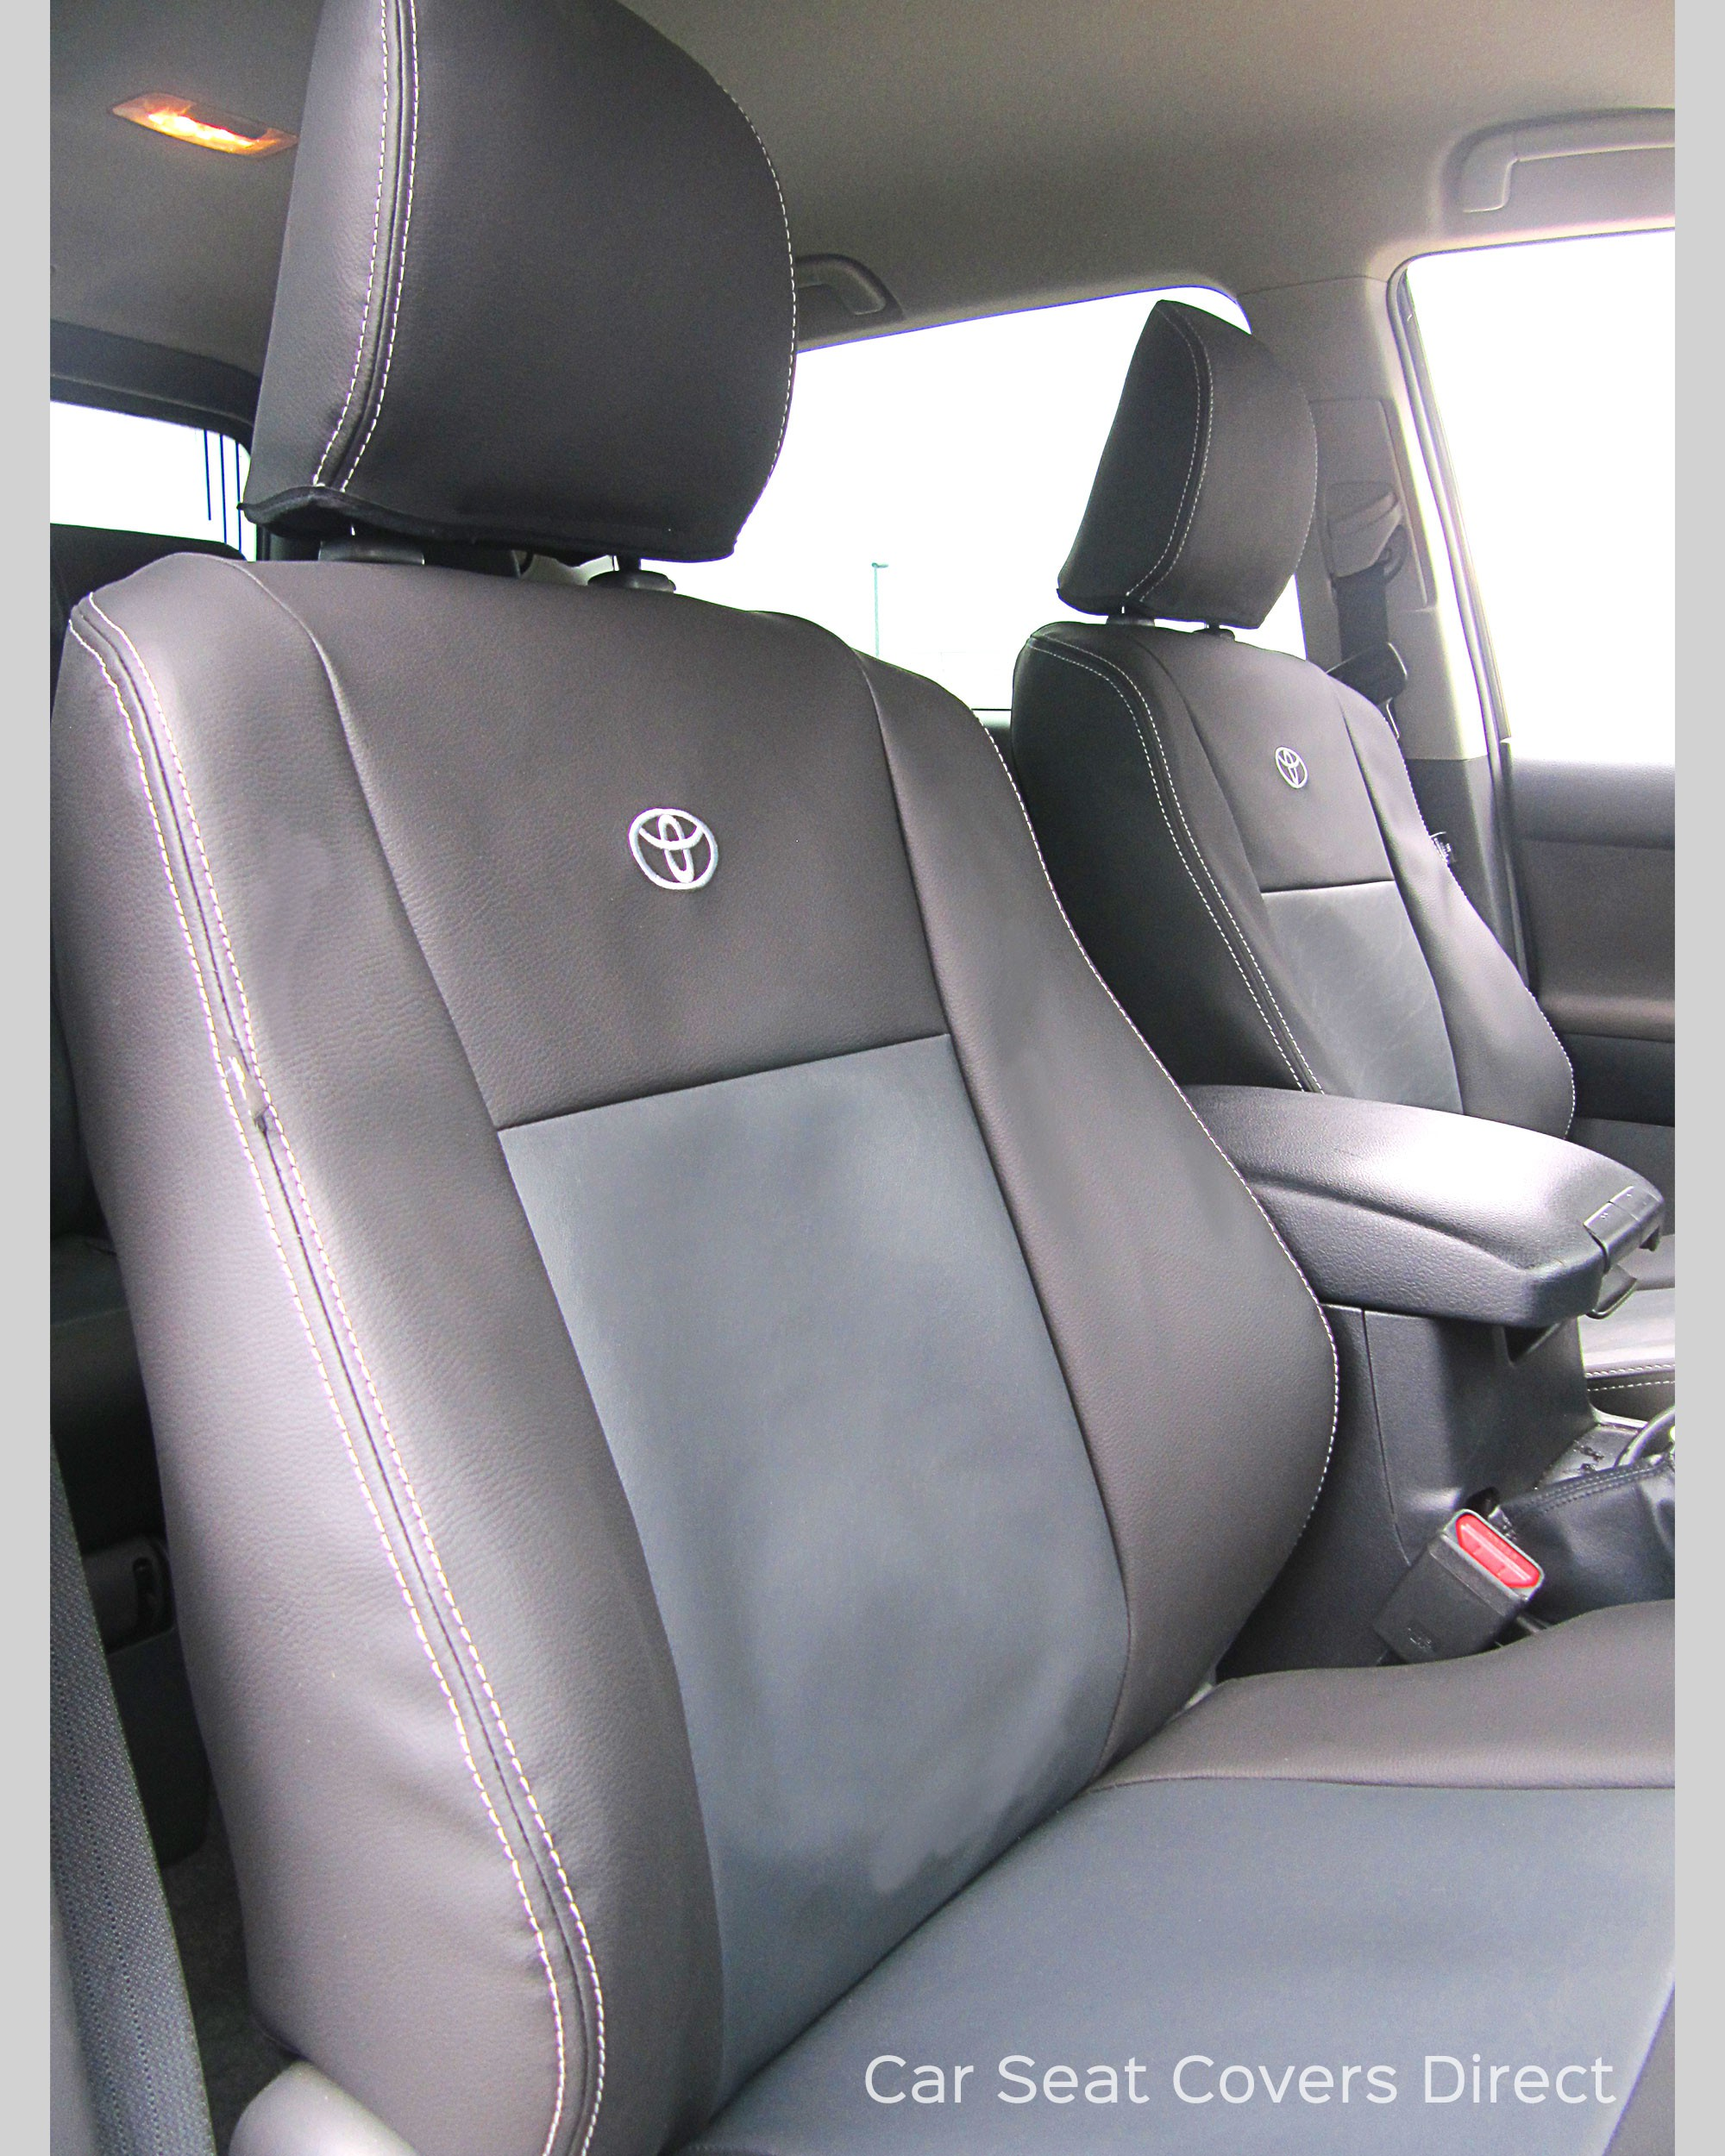 Toyota Land Cruiser Seat Covers - Drivers seat